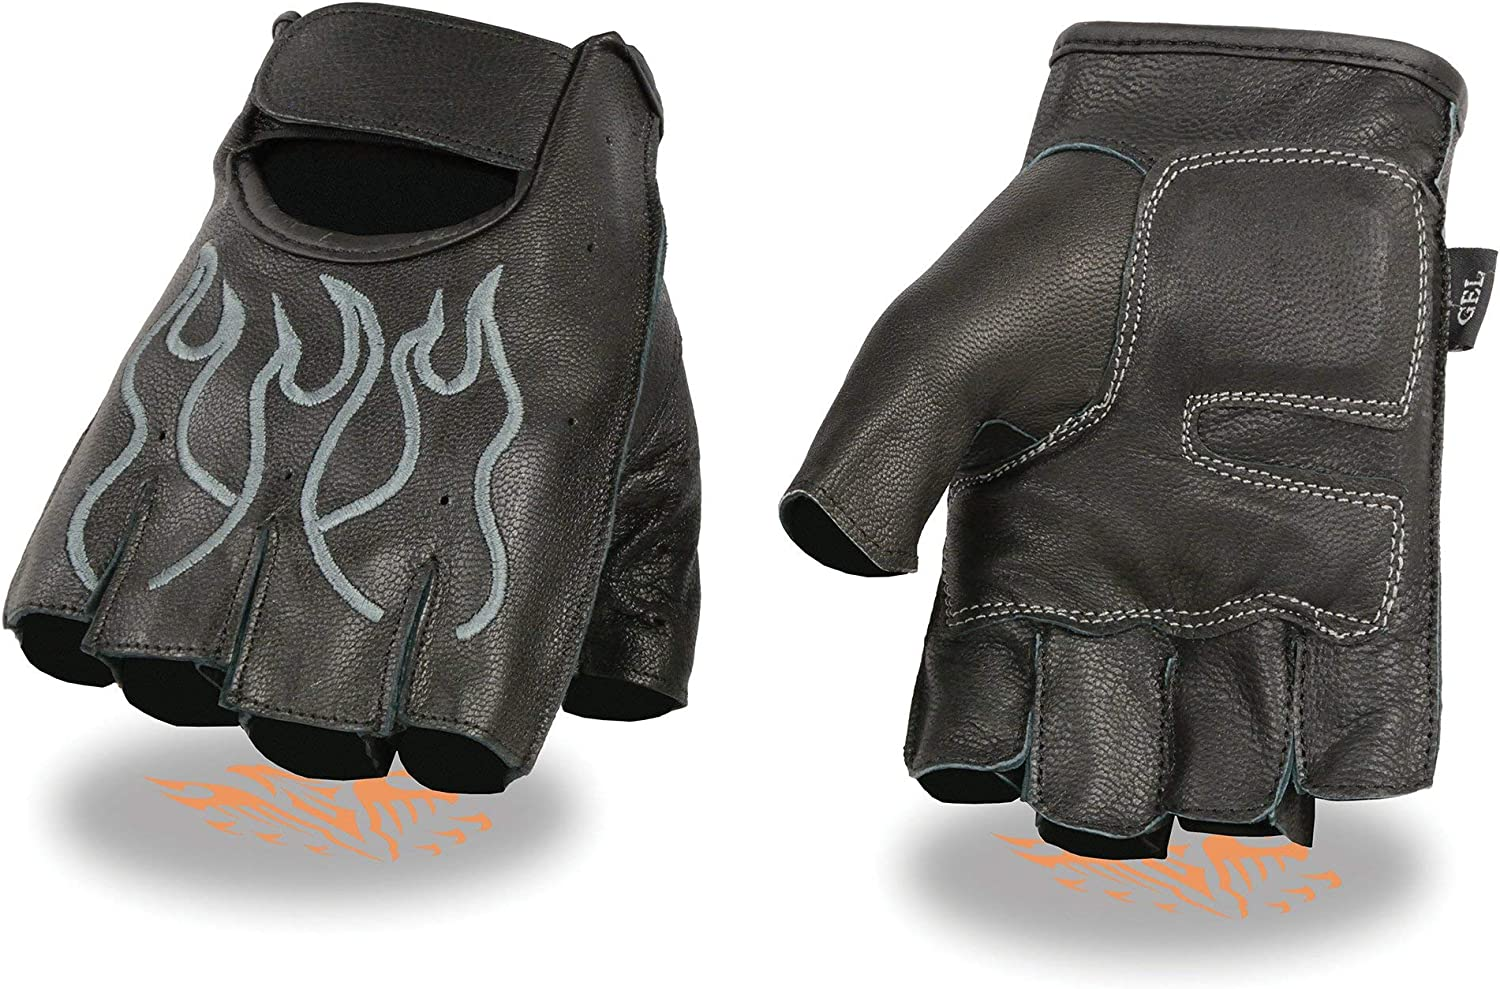 Milwaukee Manufacturer regenerated product Leather Max 41% OFF SH198 Men's Black Flamed Grey and Embroidered